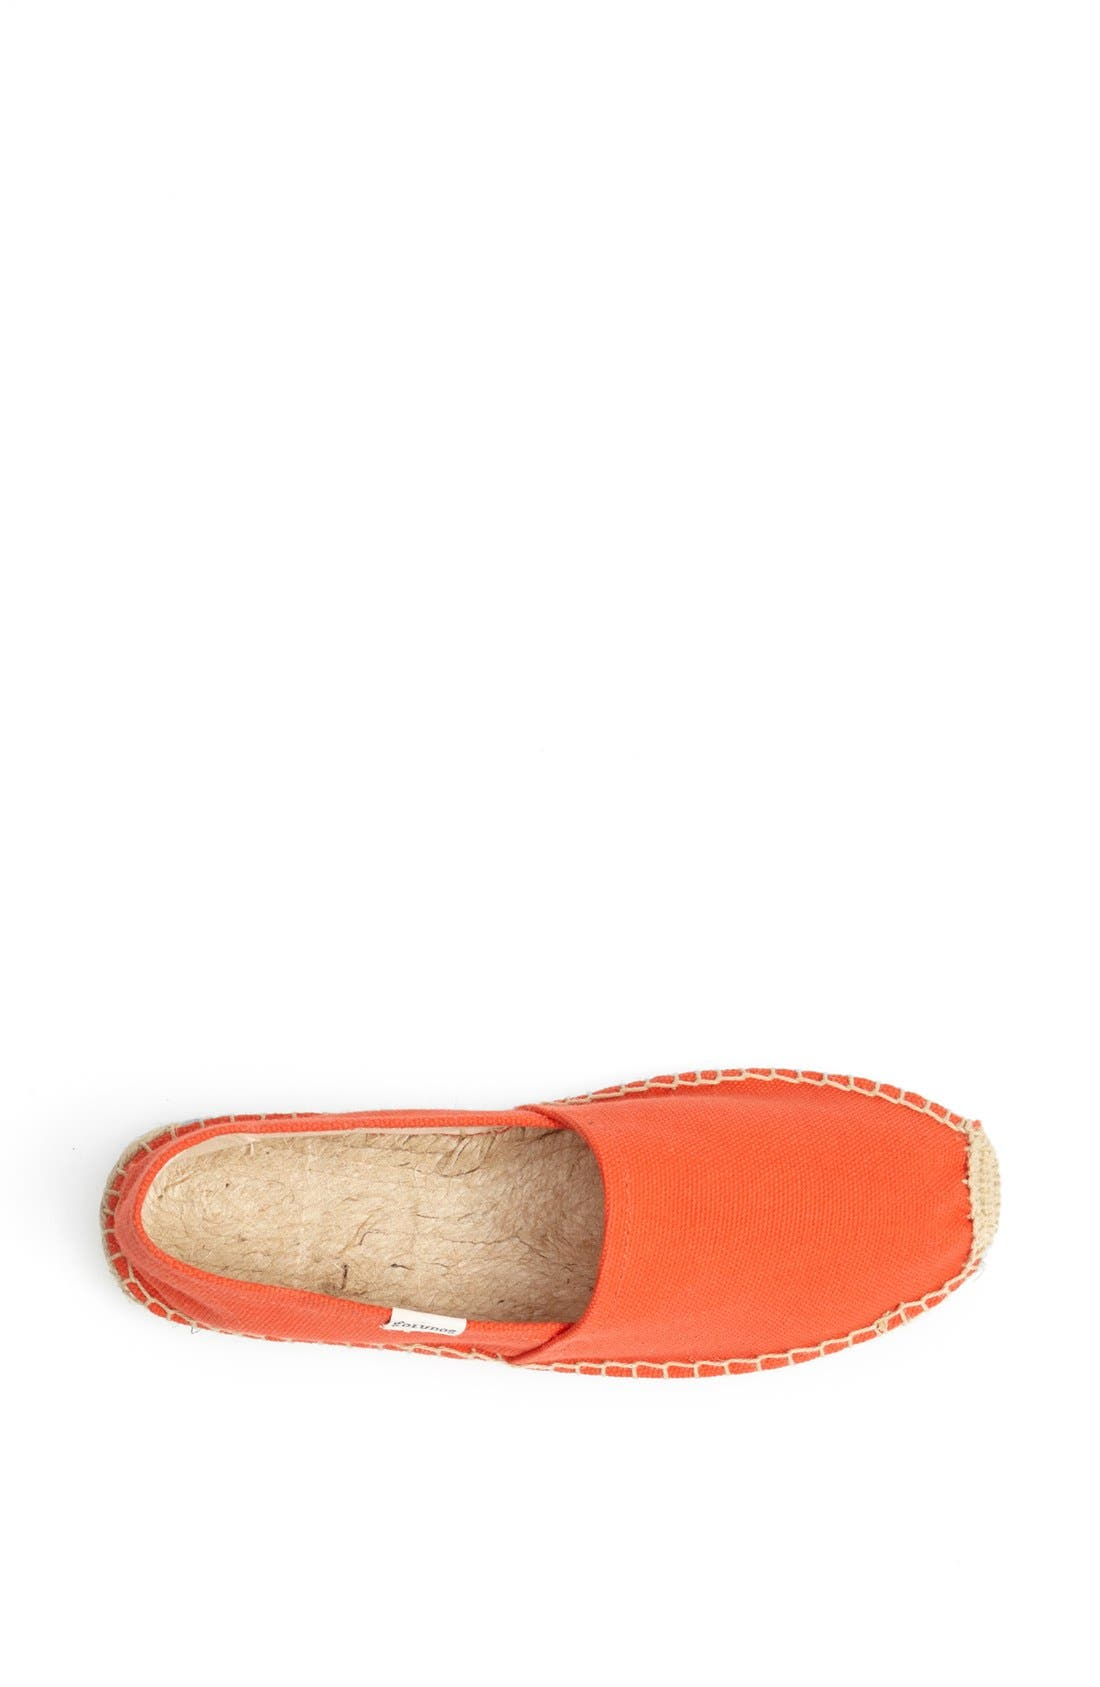 Alternate Image 3  - Soludos 'Dali' Slip-On (Women)